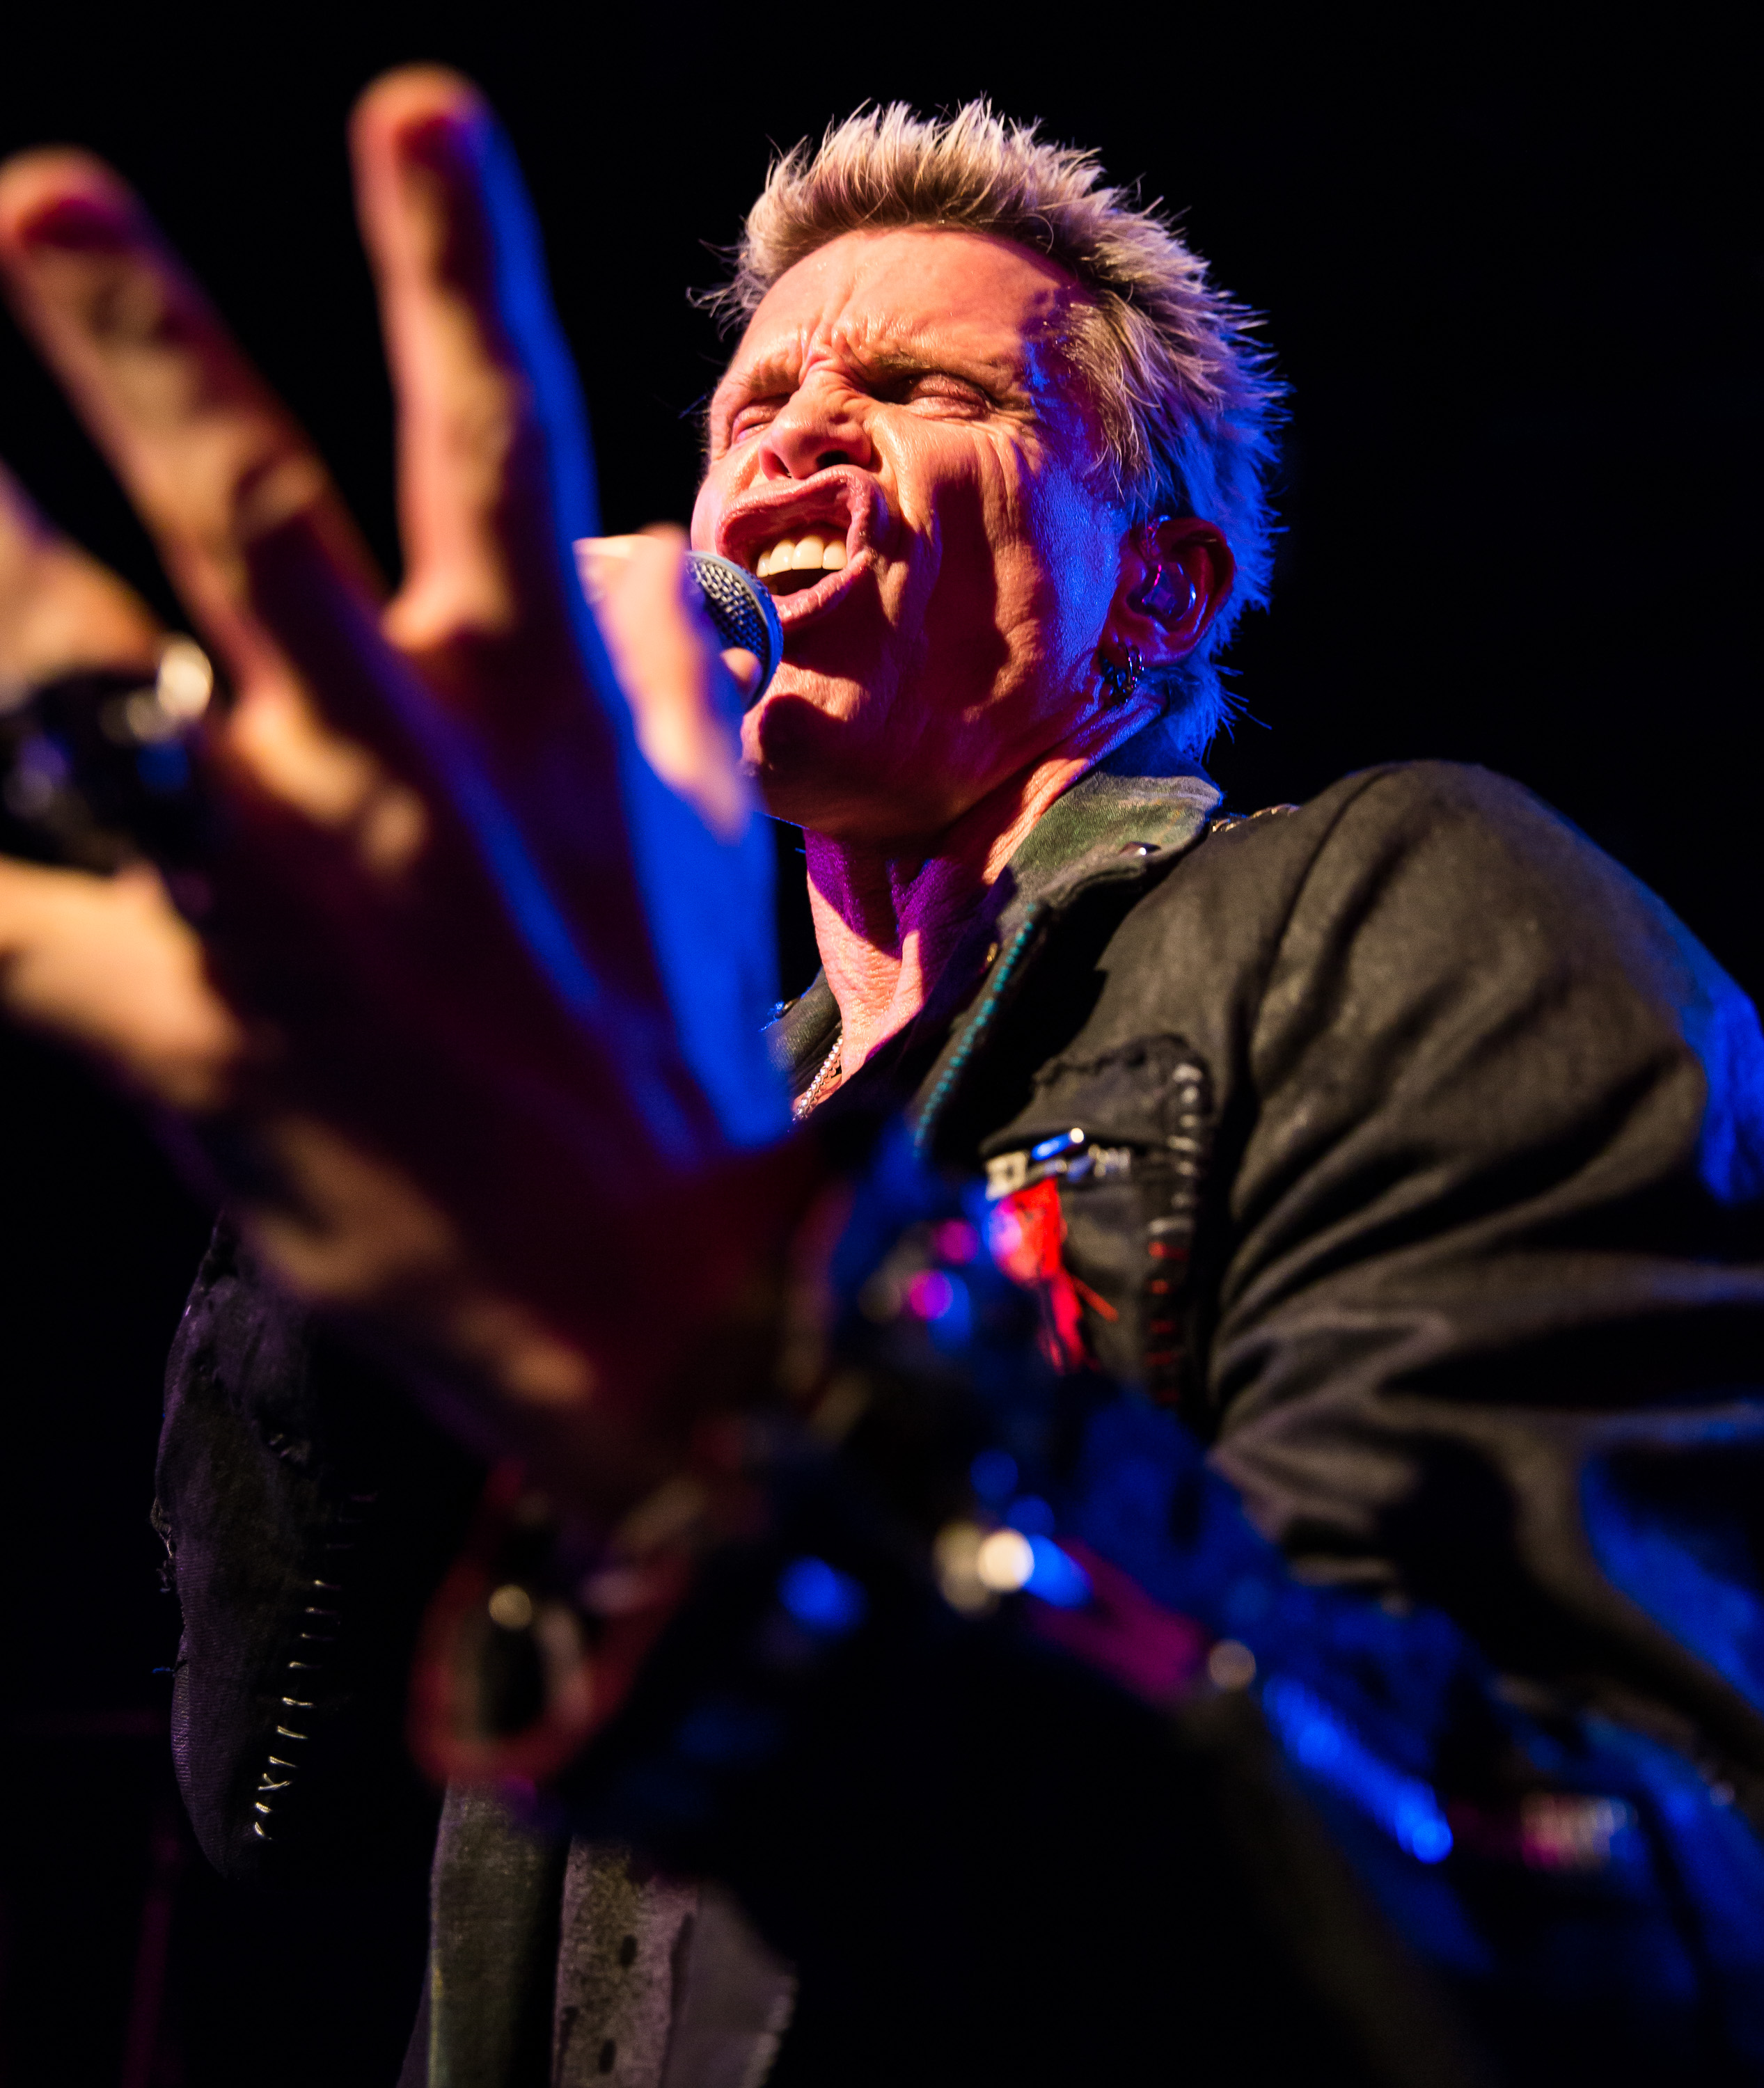 Billy Idol Performs In West Hollywood California On December 20th 2017